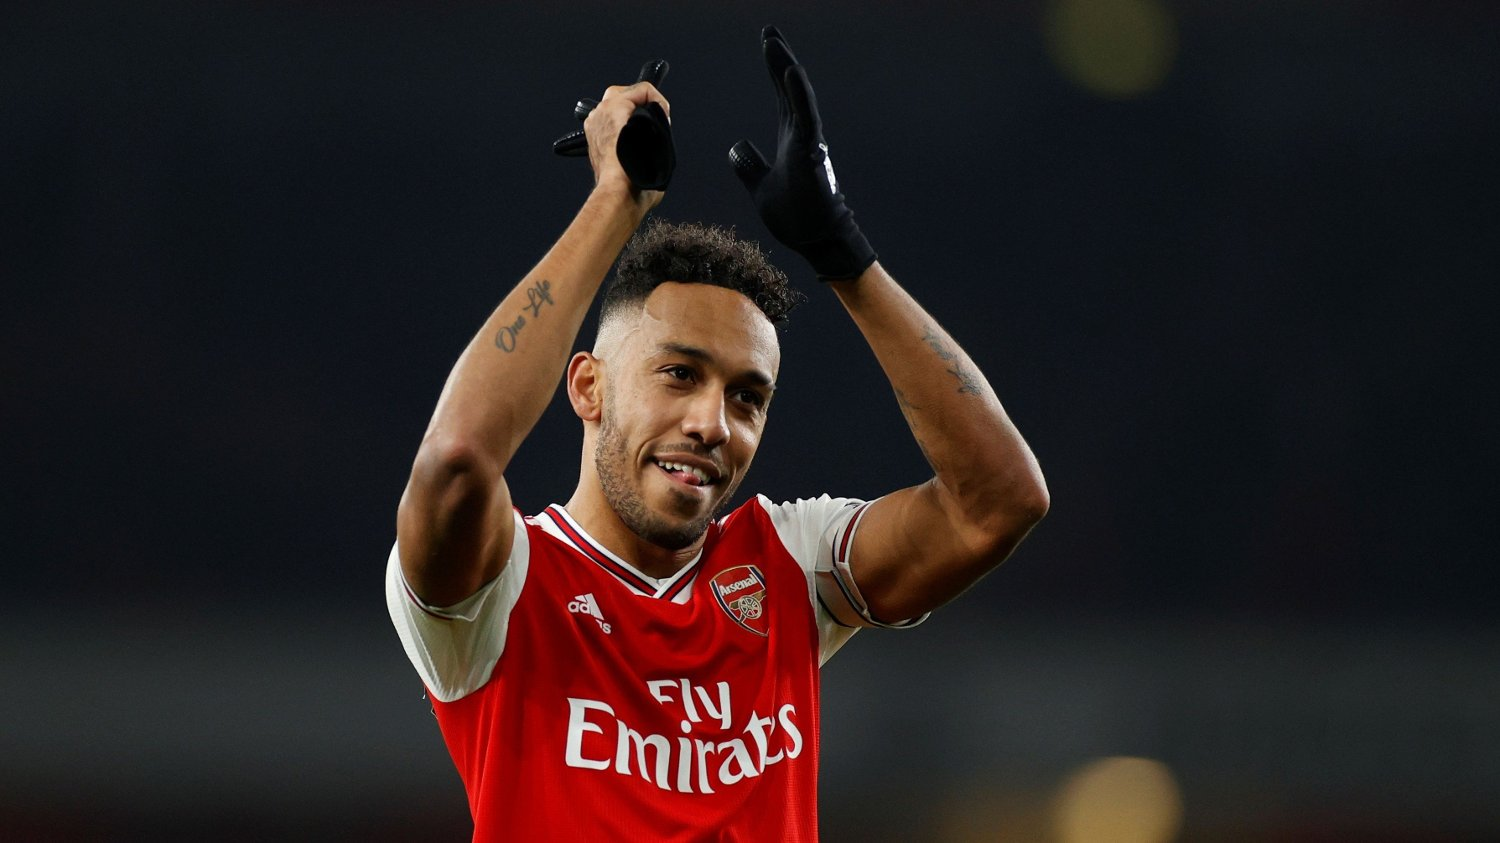 Soccer Football - Premier League - Arsenal v Manchester United - Emirates Stadium, London, Britain - January 1, 2020 Arsenal's Pierre-Emerick Aubameyang celebrates after the match Action Images via Reuters/John Sibley EDITORIAL USE ONLY. No use with unauthorized audio, video, data, fixture lists, club/league logos or